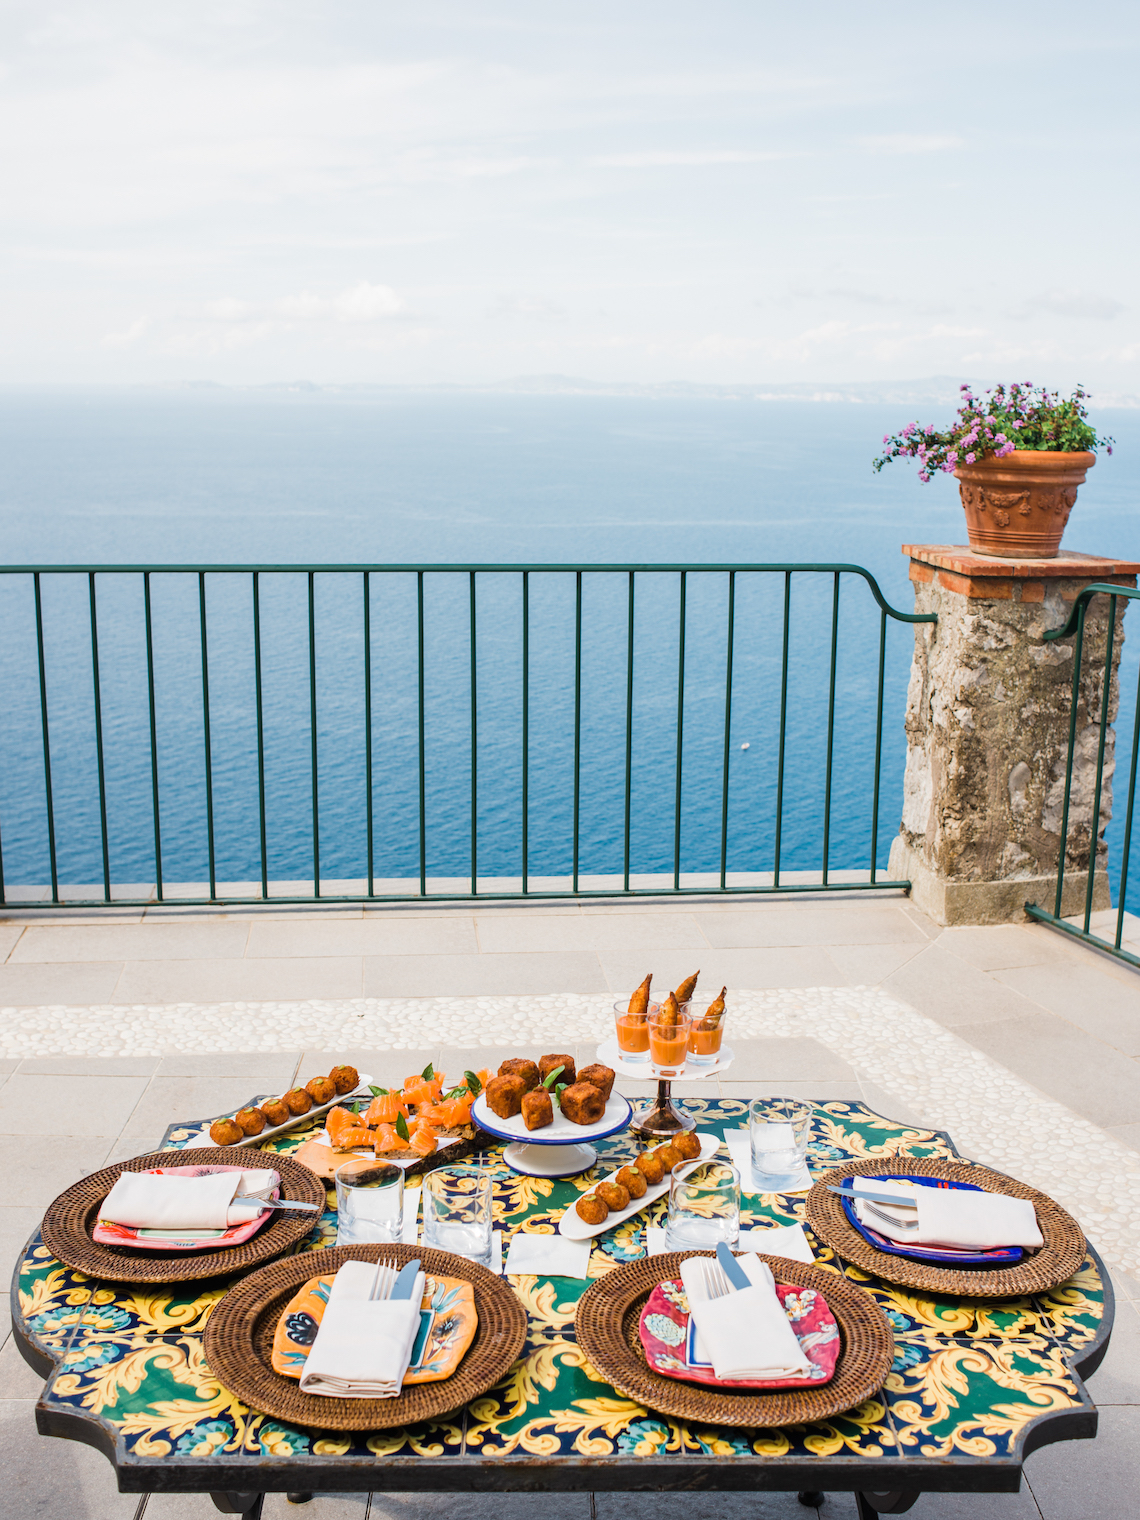 The Ultimate Mediterranean Capri Elopement – Rochelle Cheever 11